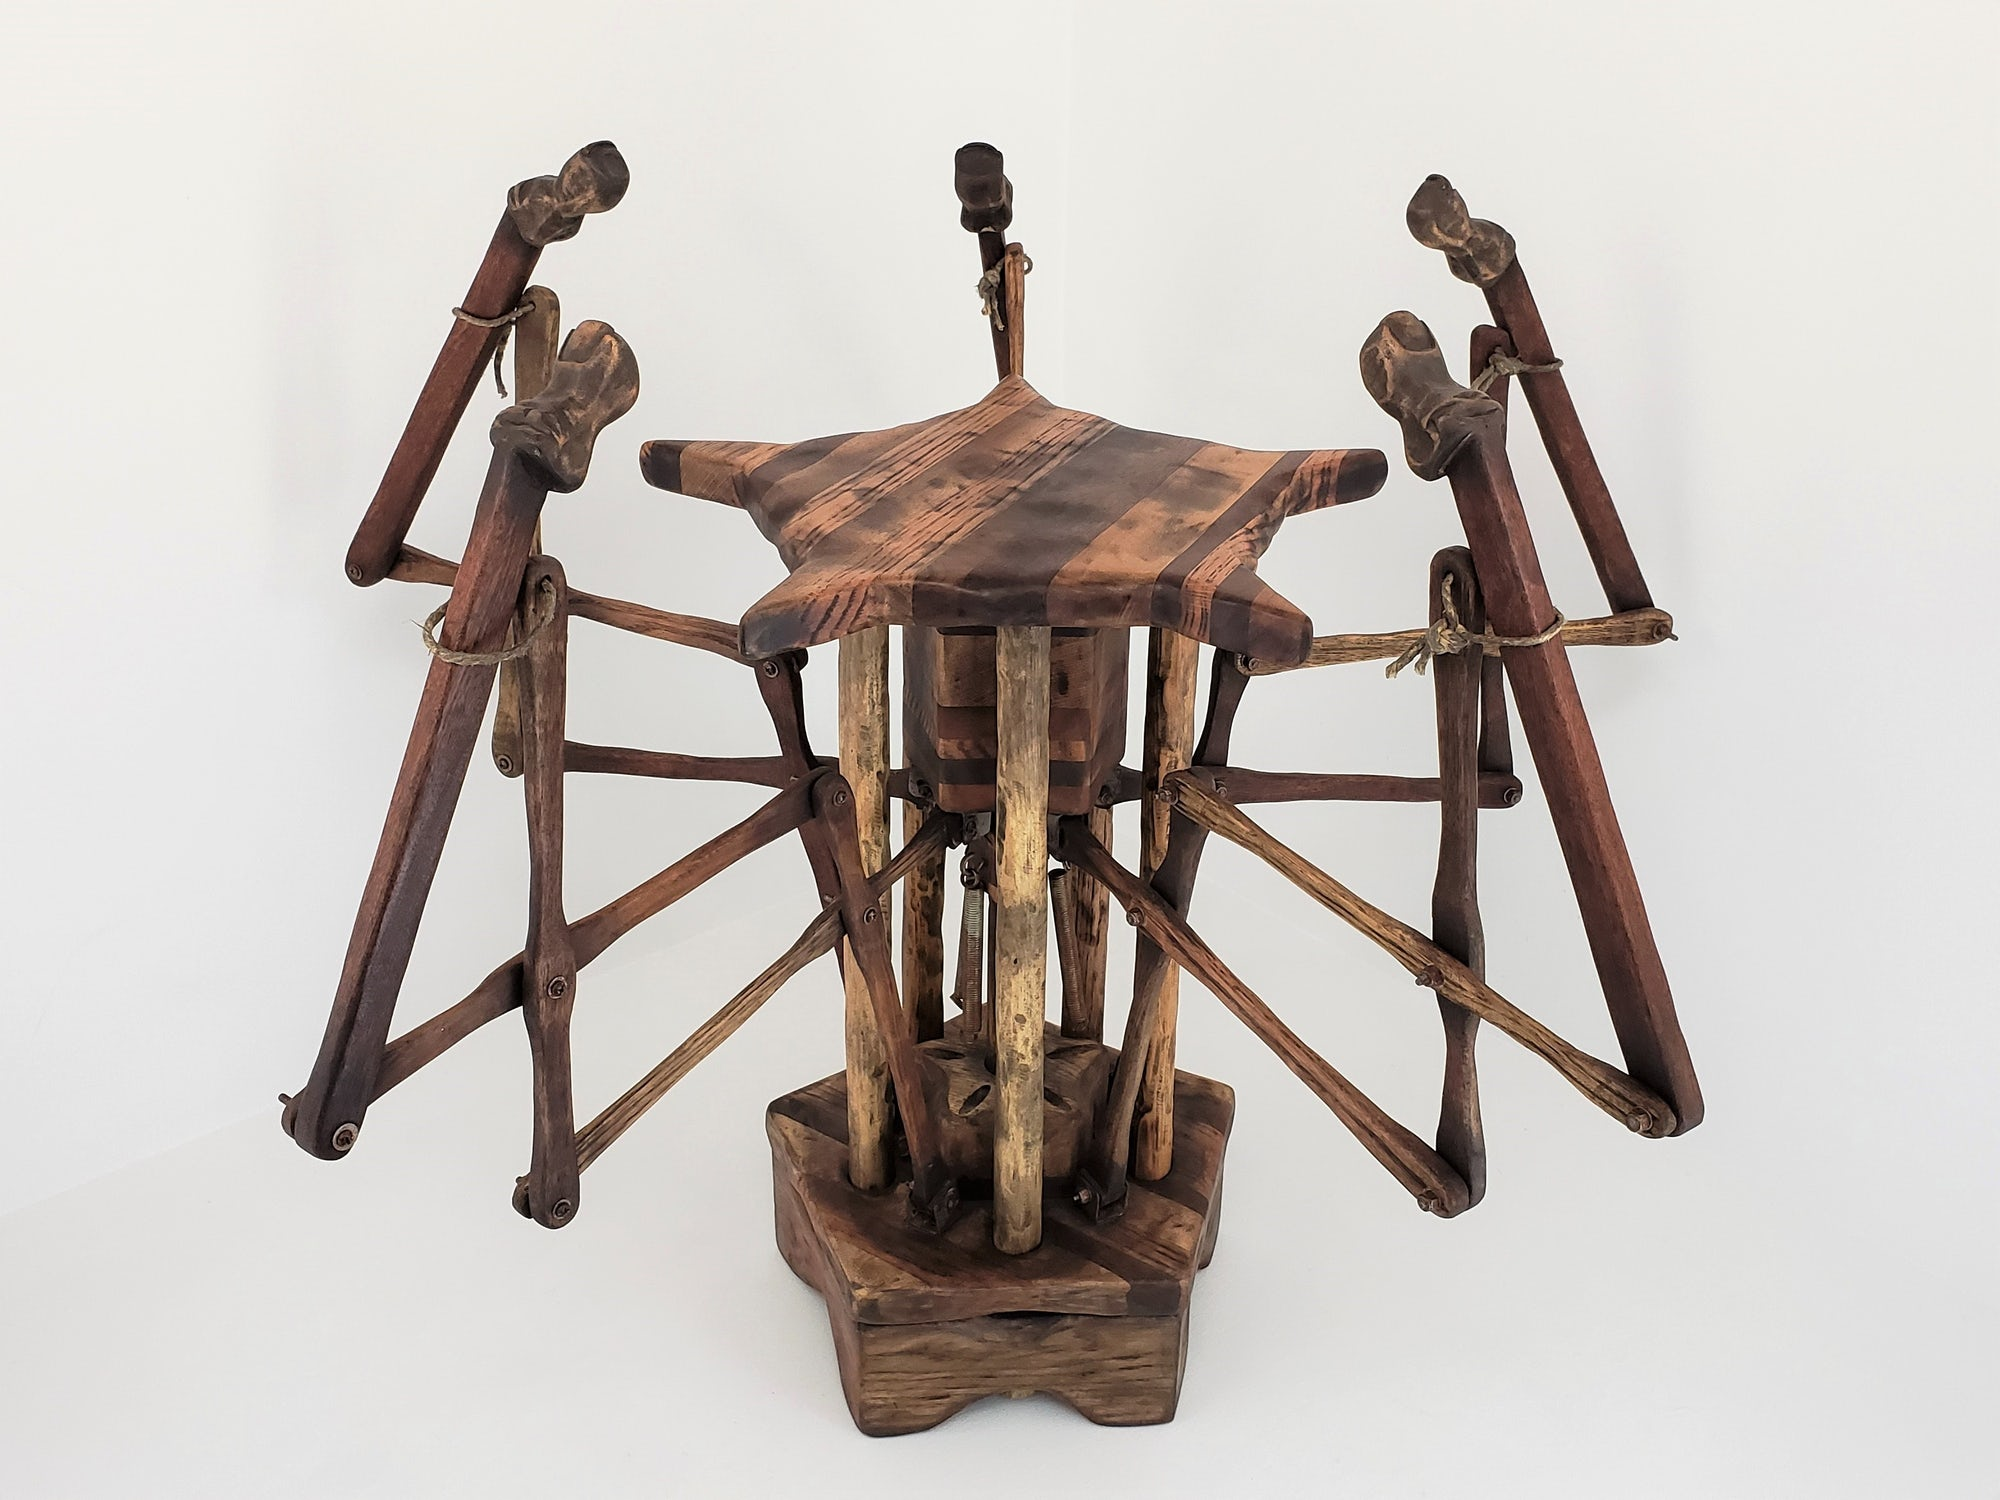 This stool points towards an occupant when the weight of a person rests on the seat. The five finger mechanisms extend and rise from beneath the seat when depressed. Once weight is released, springs pull the fingers down to their starting position and the